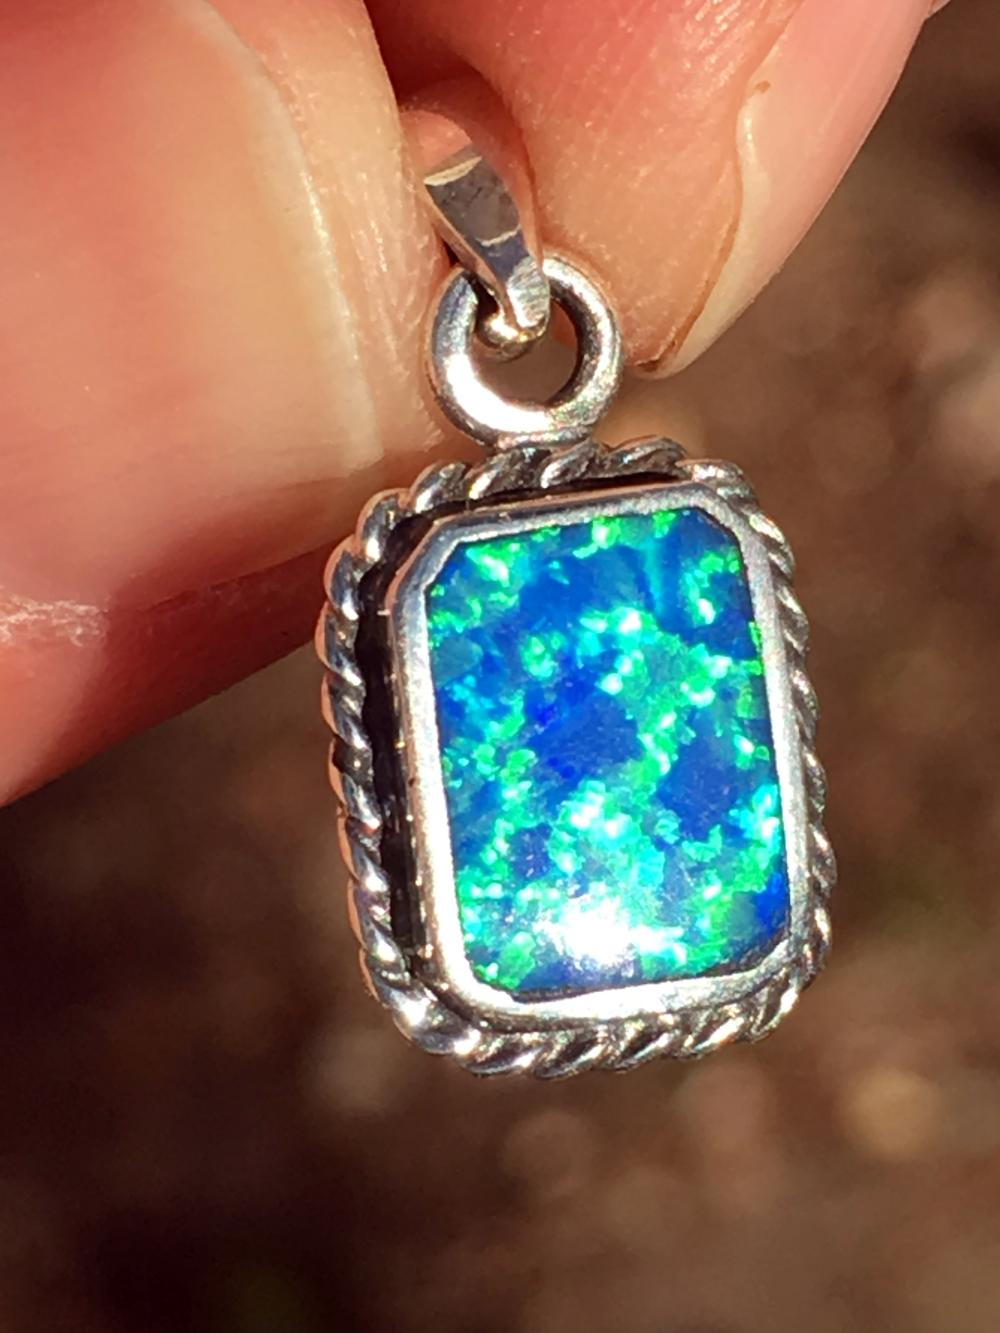 Lot 240: Opal, Rock, Crystal, Natural, Jewelry, Sterling